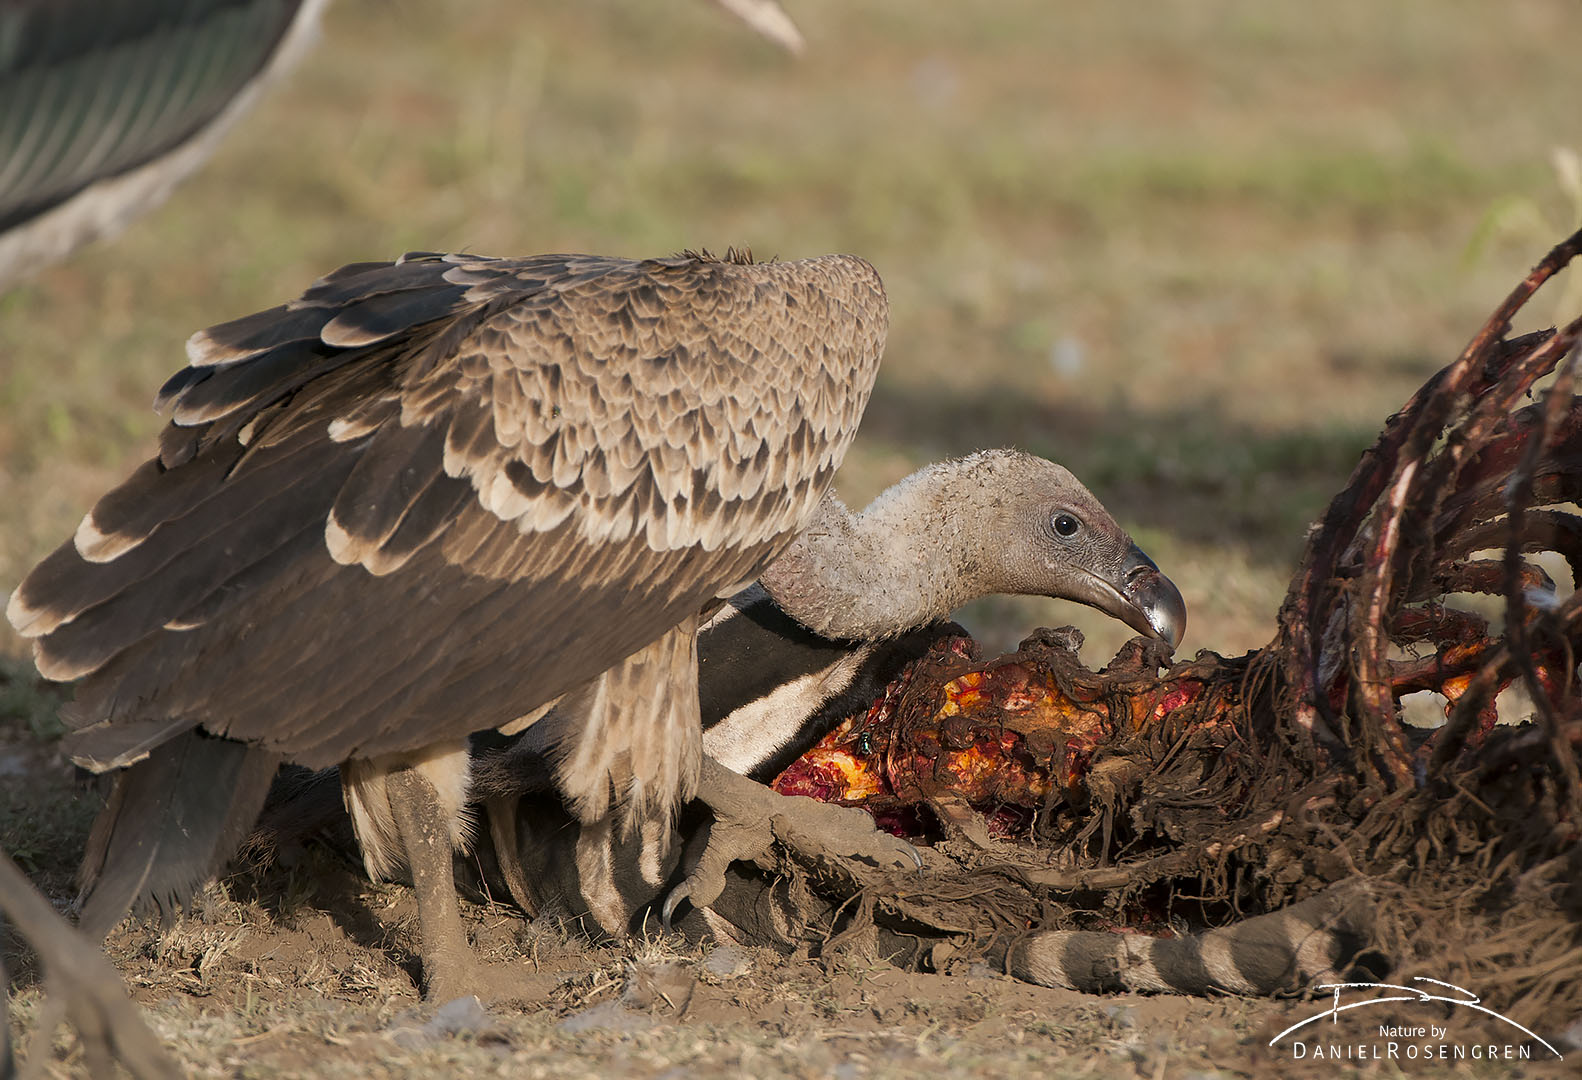 A White-backed vulture enjoying a zebra carcass. © Daniel Rosengren